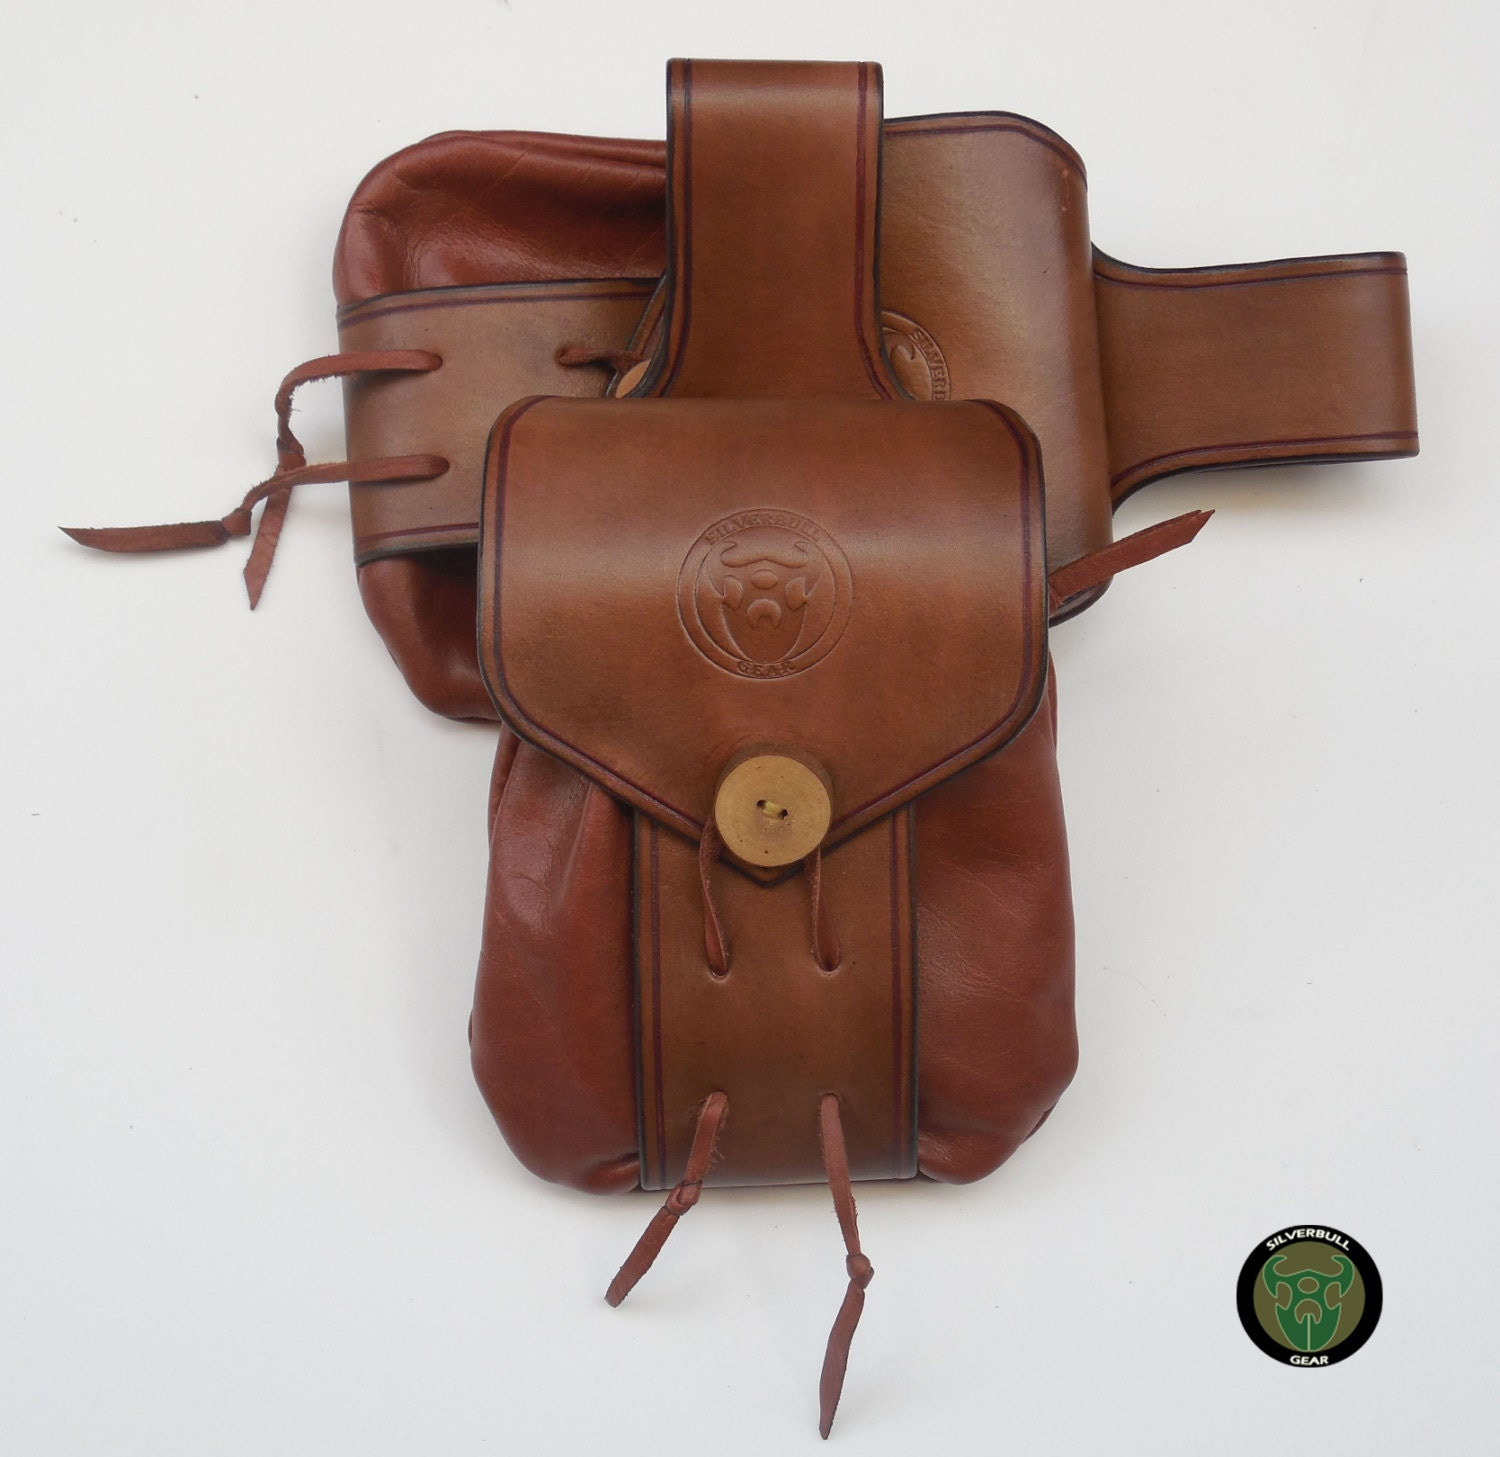 handmade bushcraft accessories leather belt by silverbullgear